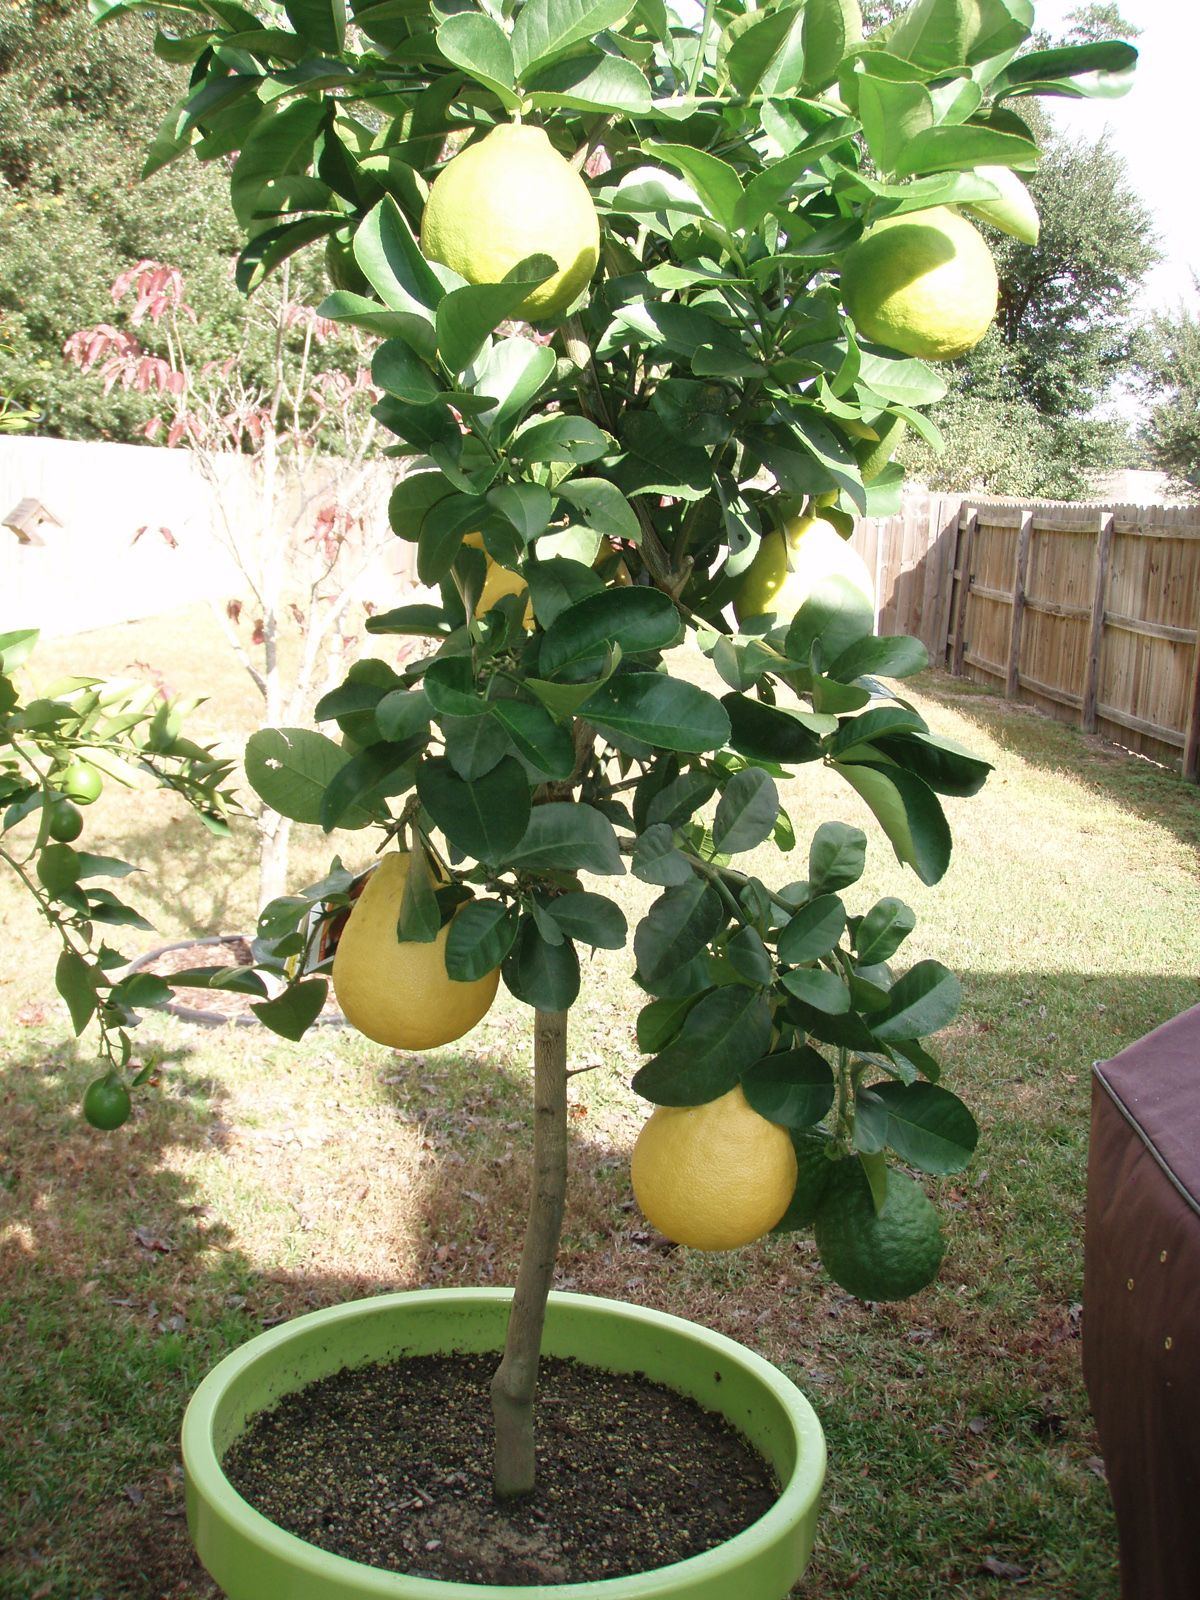 Growing Lemon Tree In A Pot